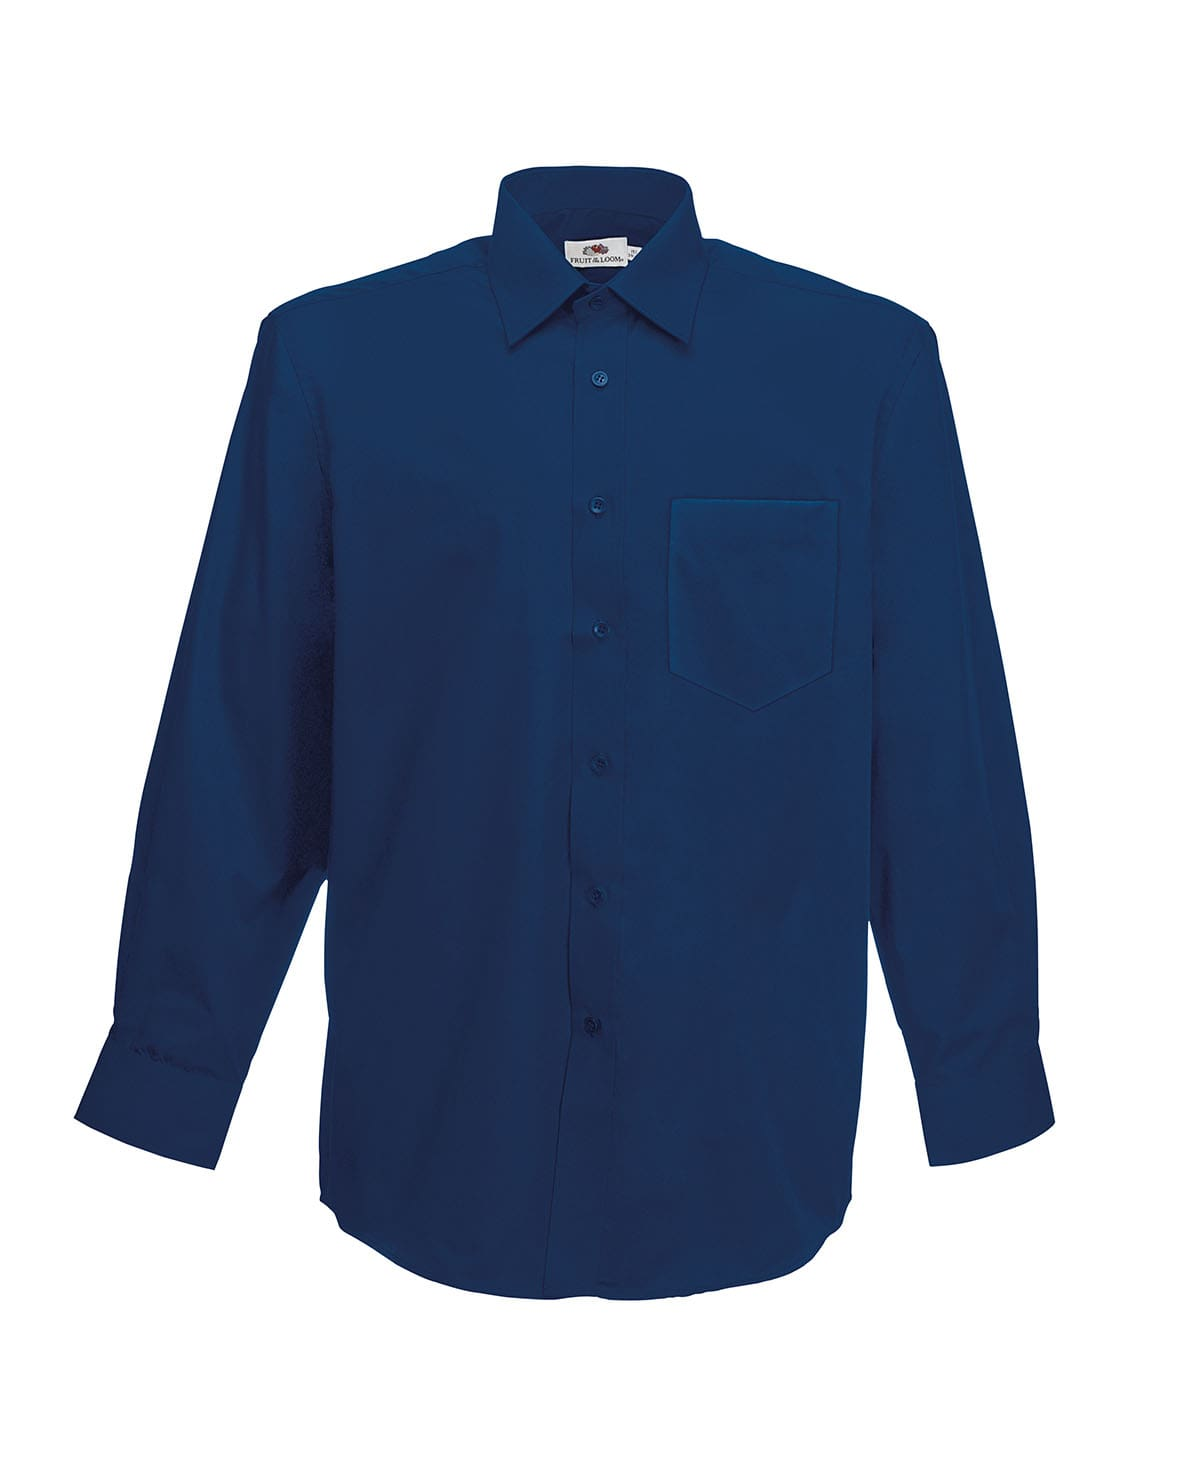 Smart and Casual Shirts - A Workwear Essential that can be Embroidered or Printed with Your Design or Logo